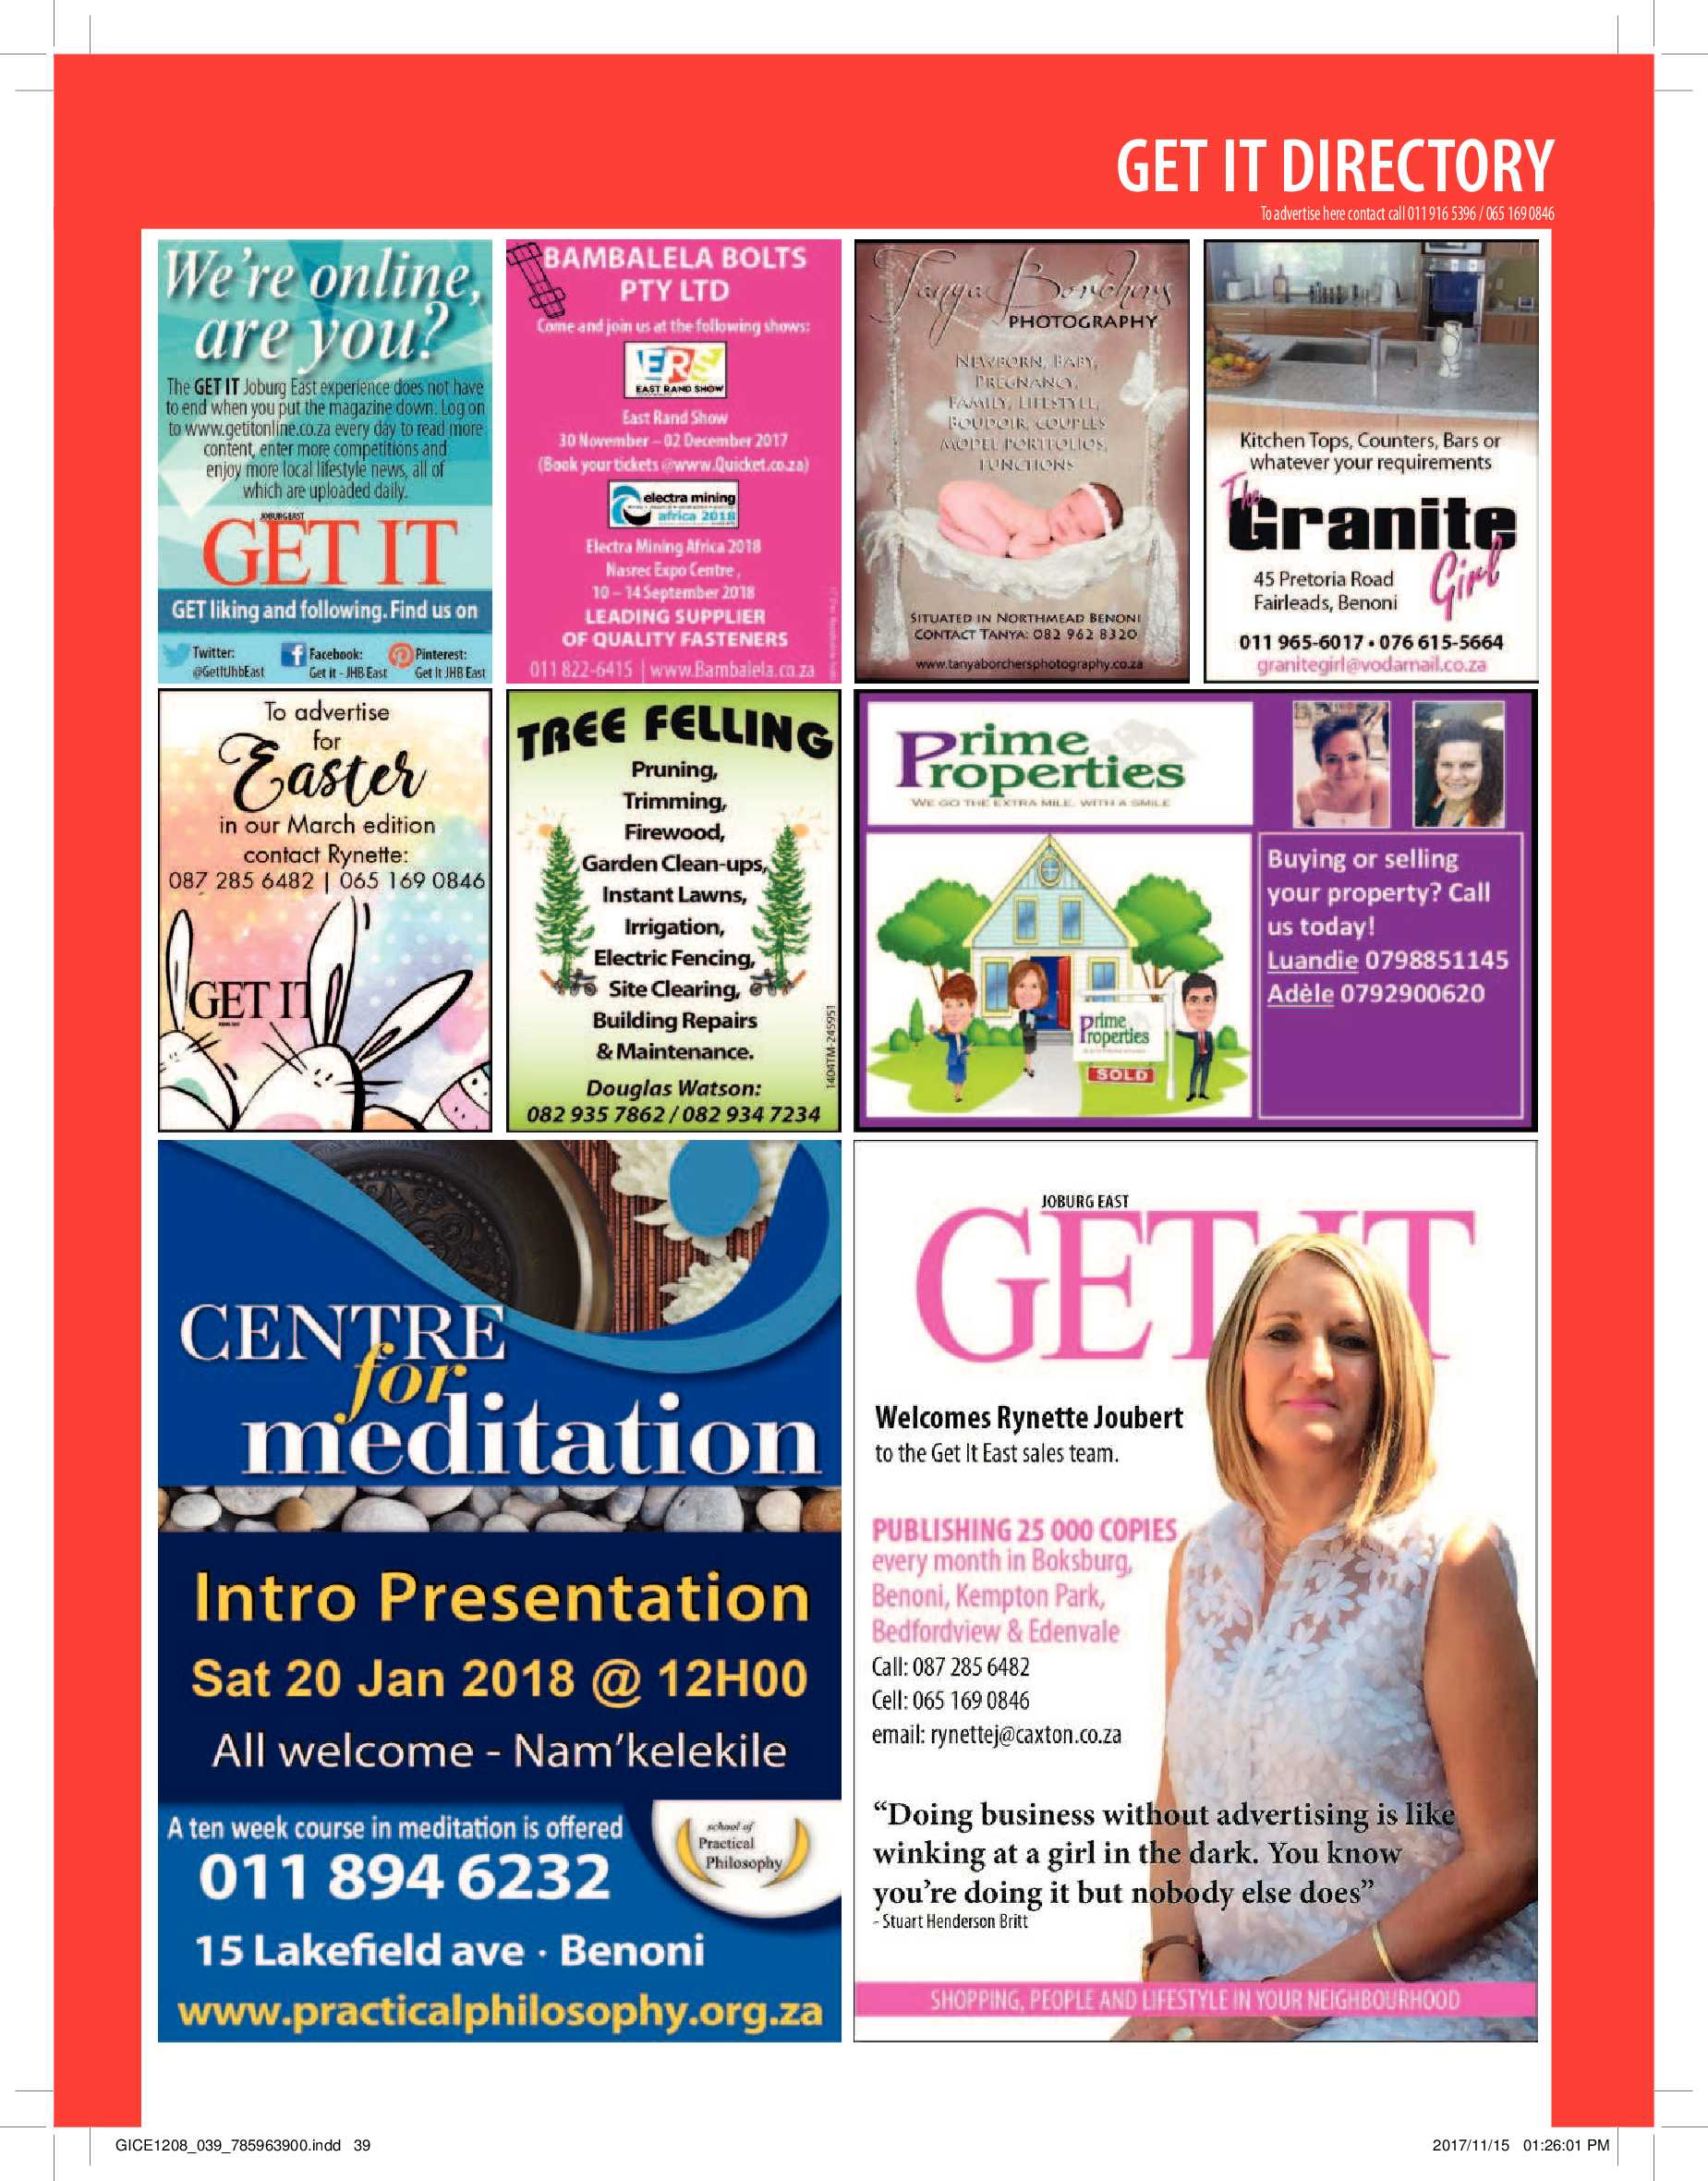 get-east-december-2017-january-2018-epapers-page-39